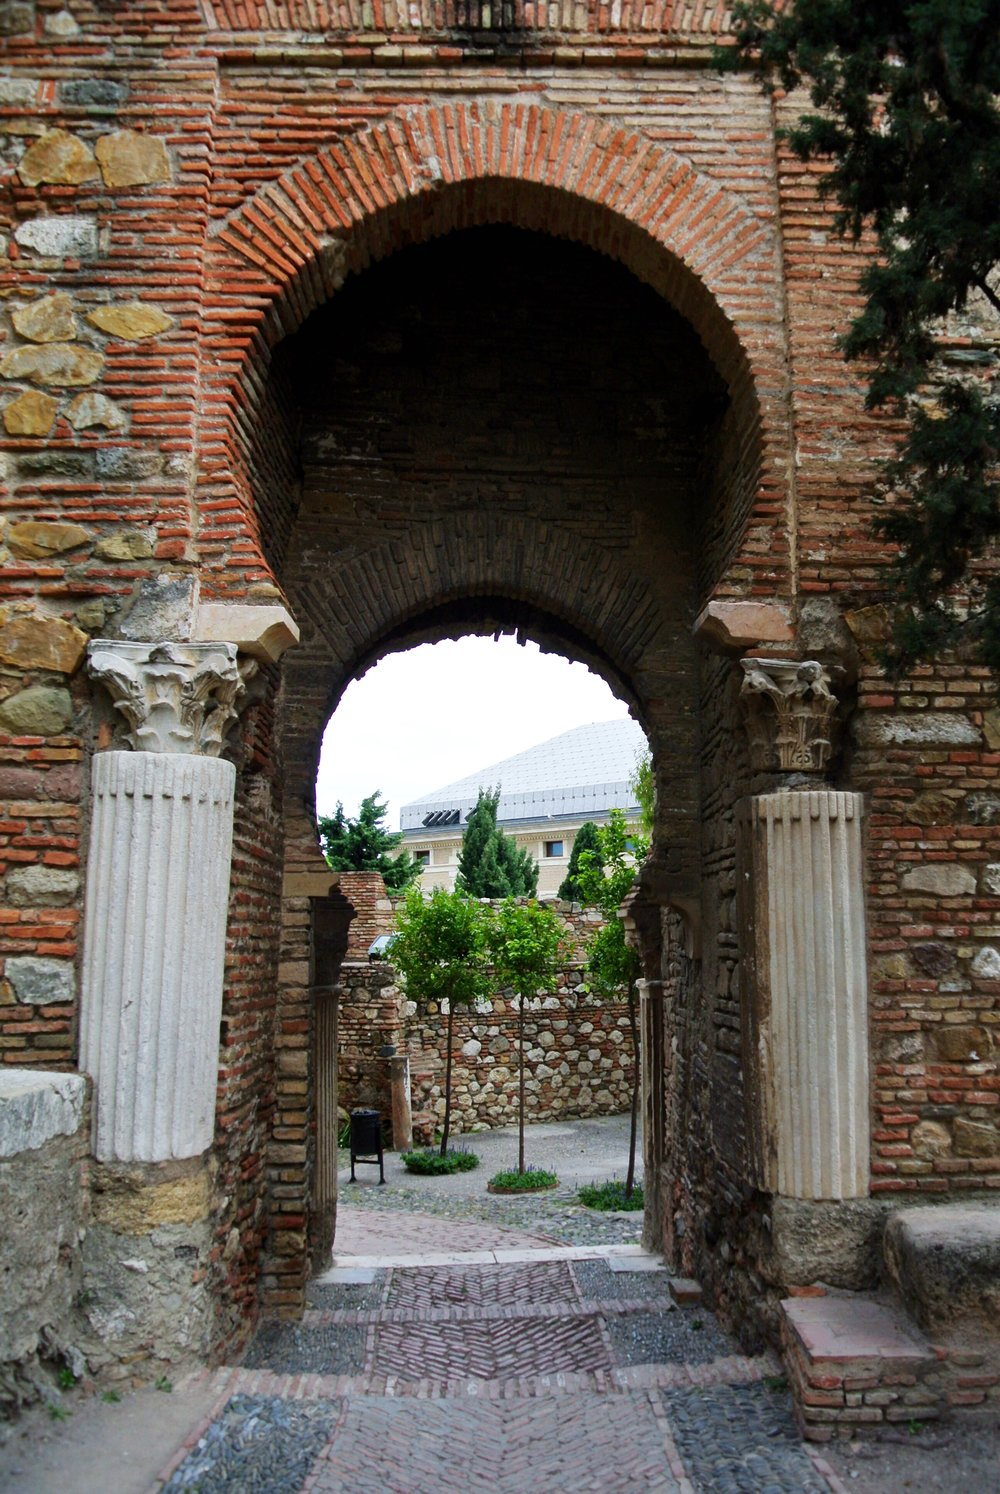 The Puerta de las Columnas, or the Gate of the Columns, was built using Roman marble columns to hold up the Moorish horseshoe arches